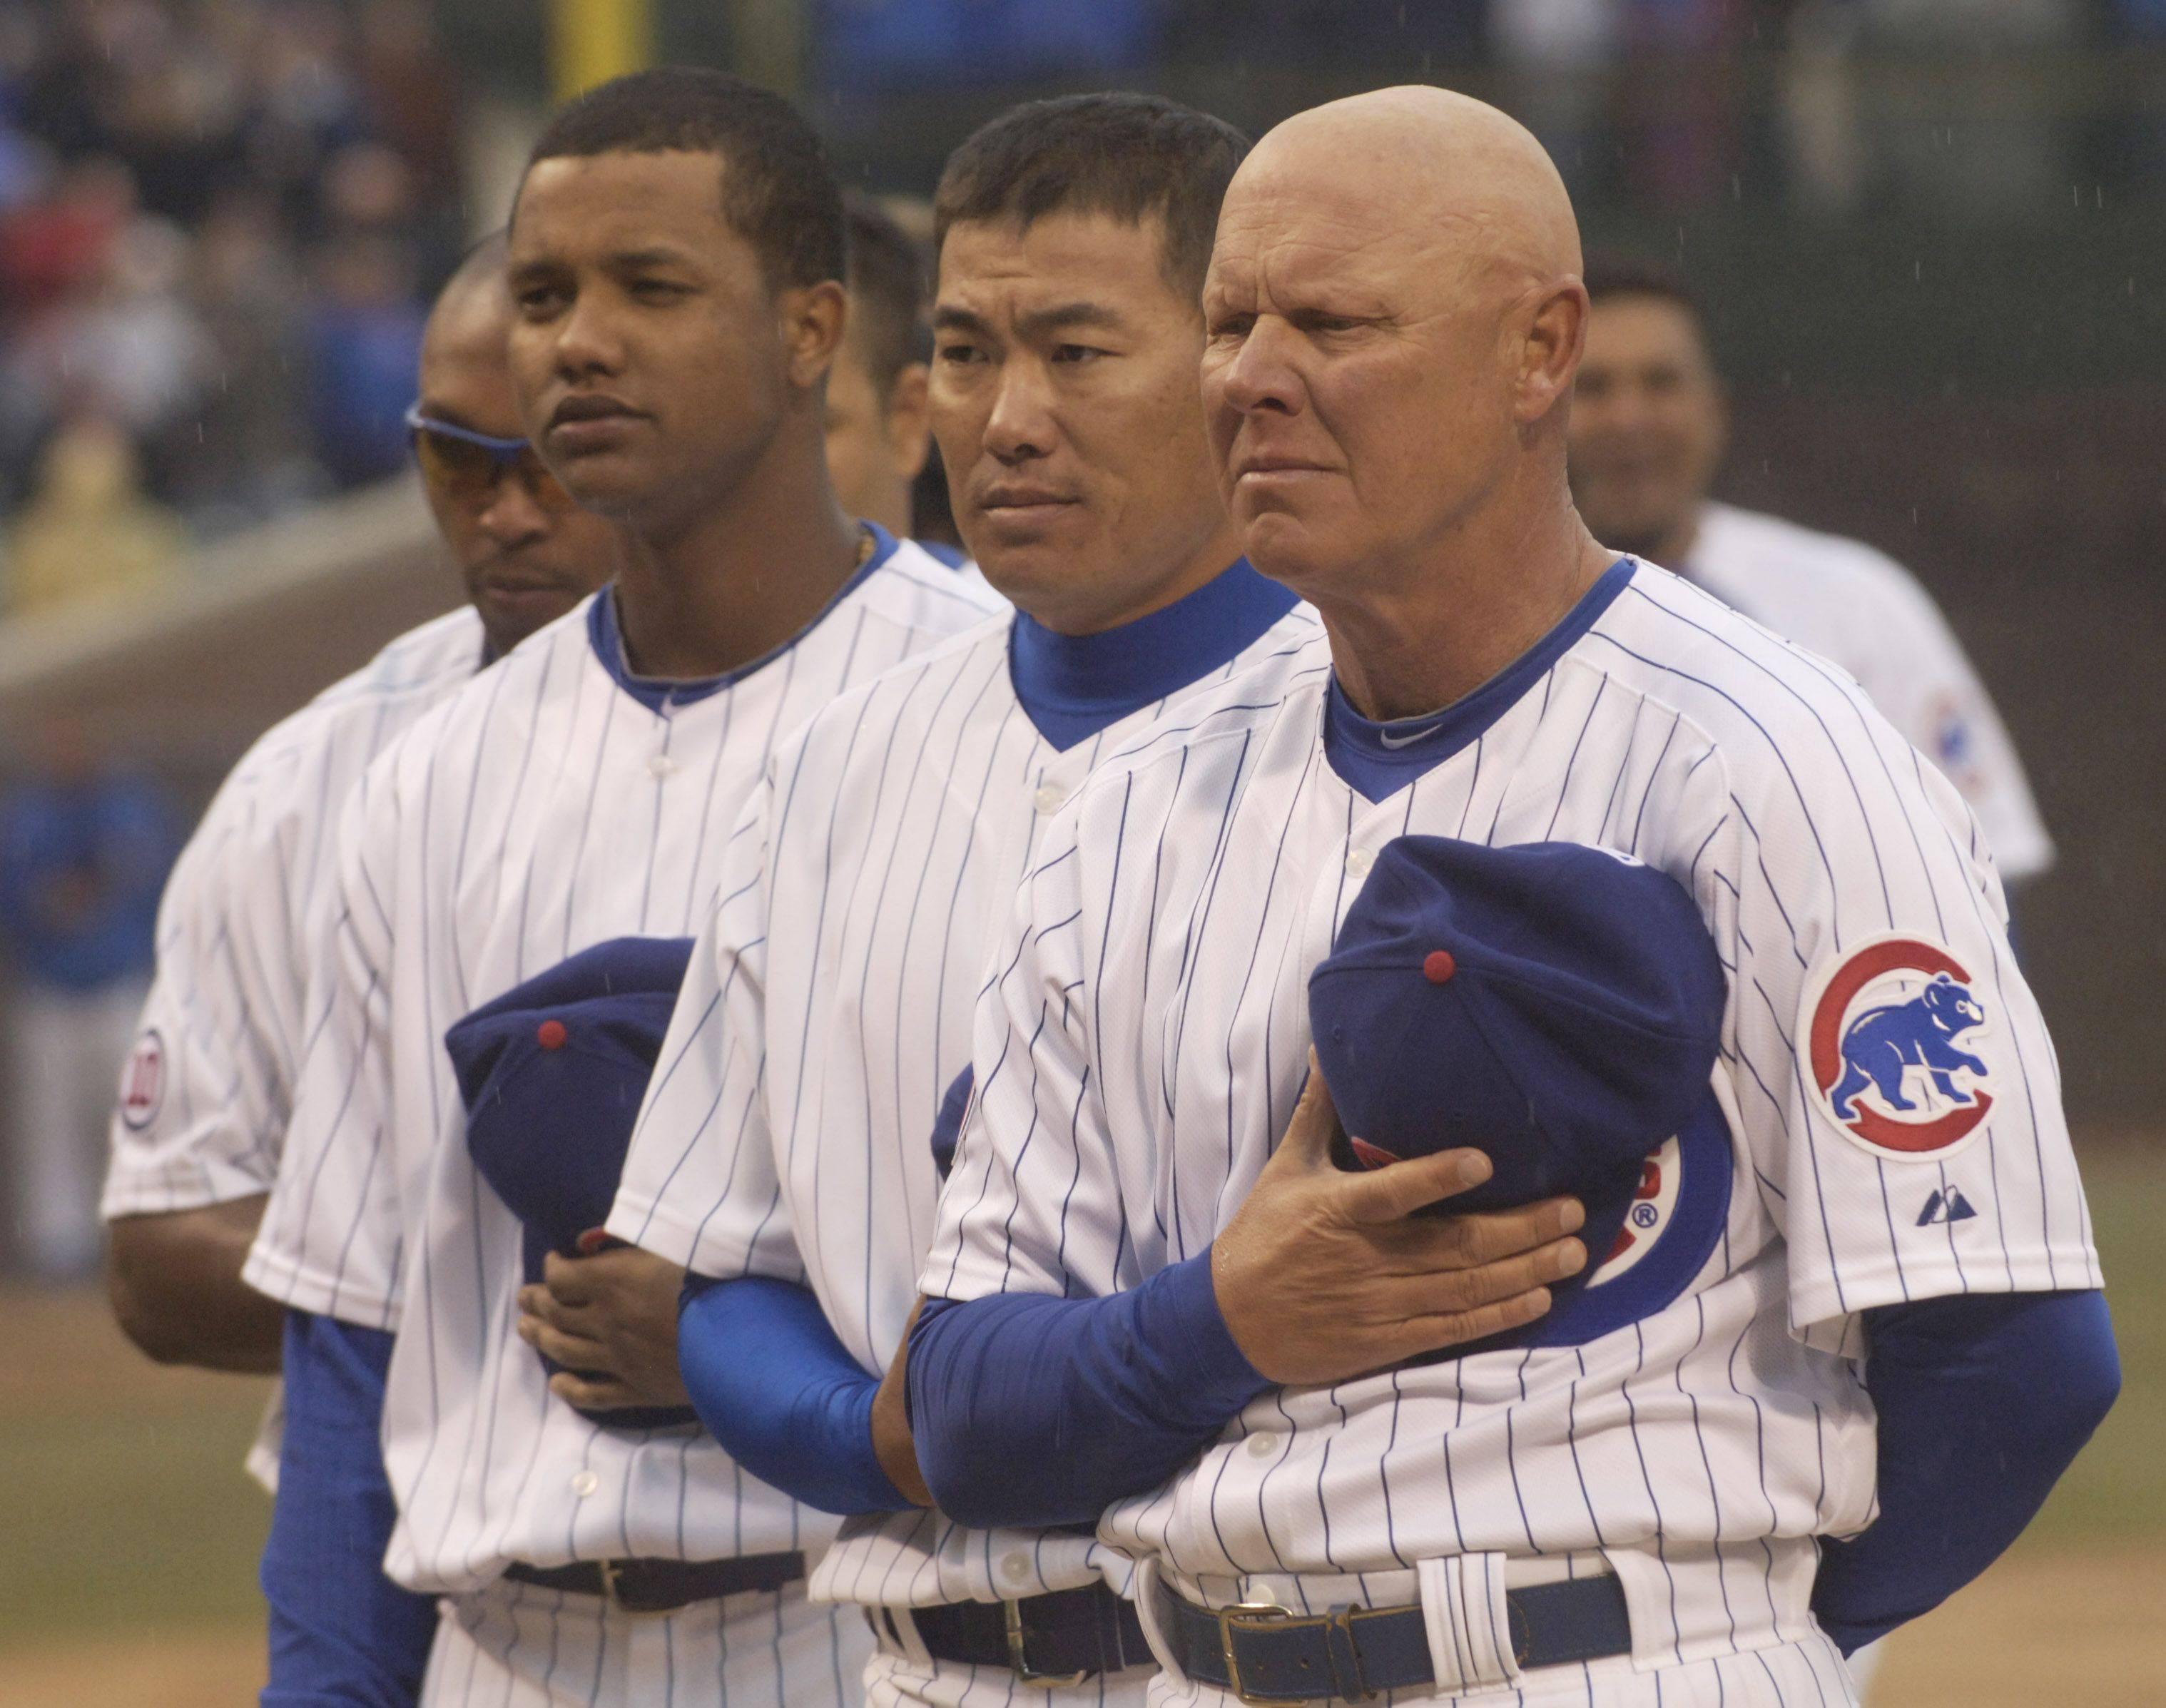 Cubs Manager Mike Quade stands with his team during the National Anthem.